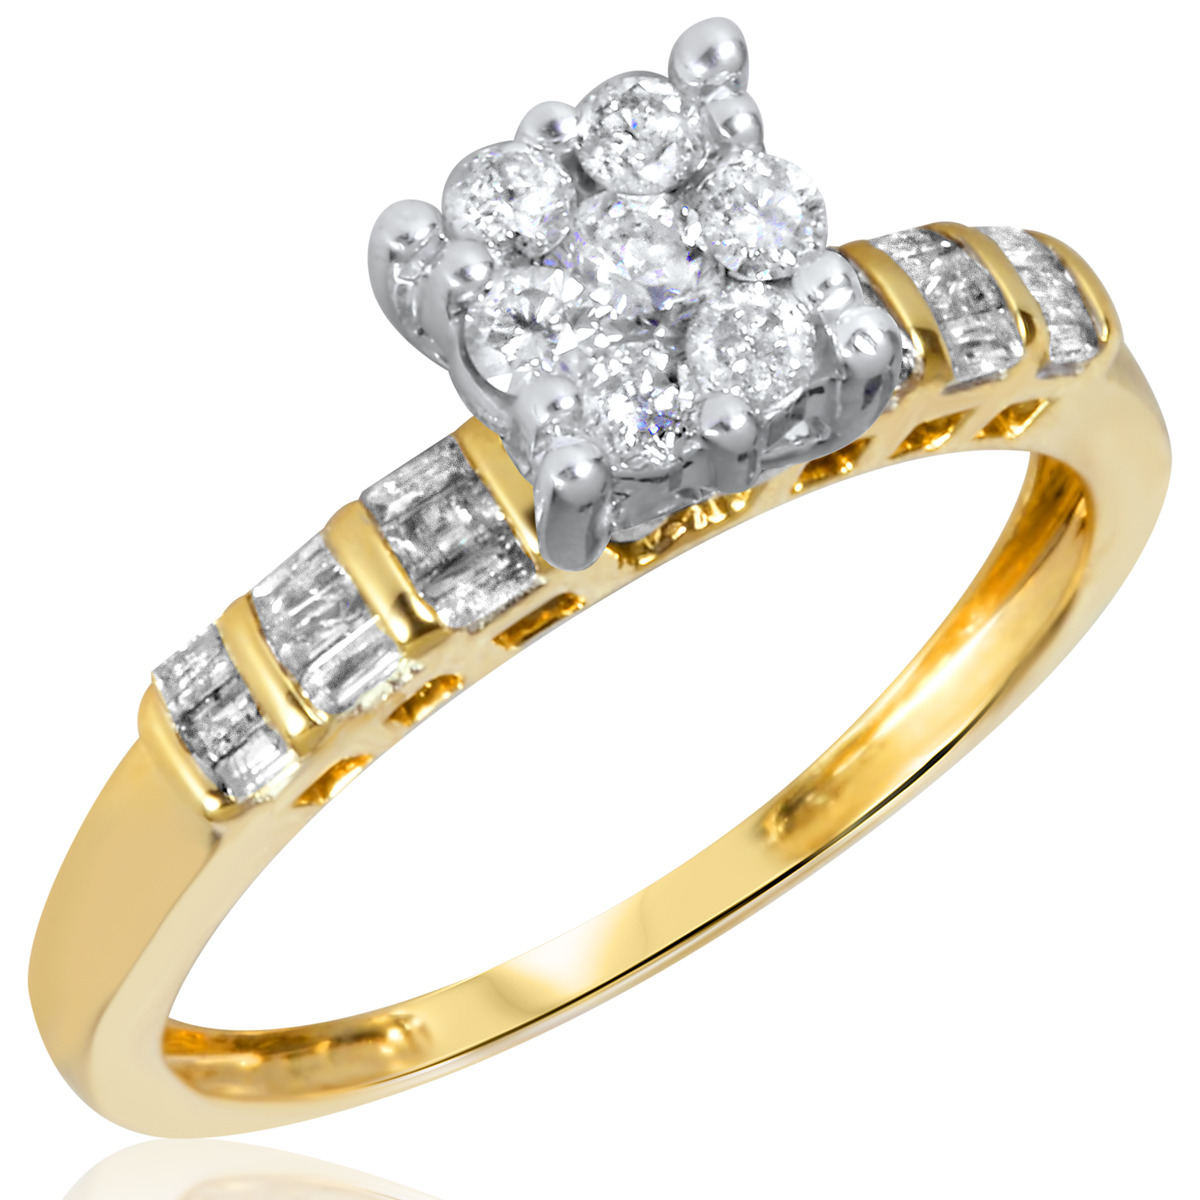 3/8 CT. T.W. Diamond Ladies Engagement Ring 14K Yellow Gold- Size 8